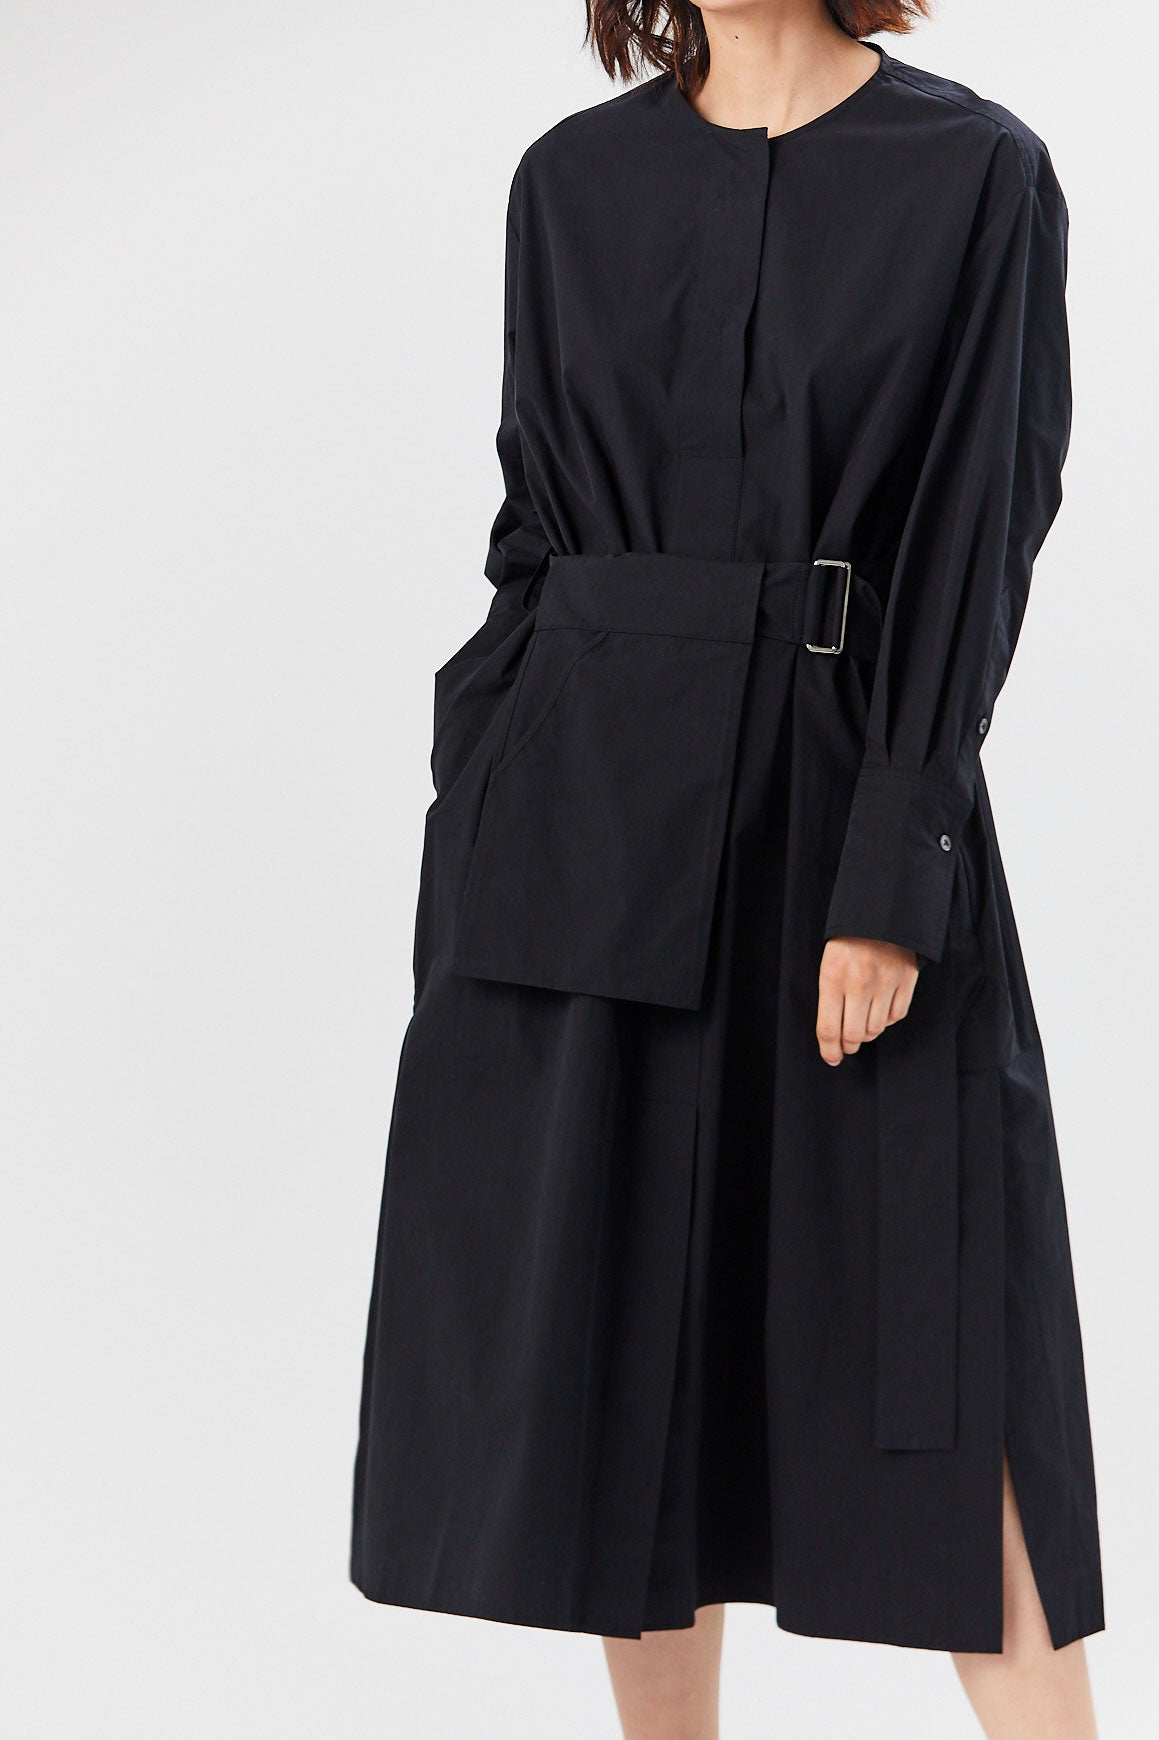 Studio Nicholson - Powder Cotton Belted Shirt Dress, Black